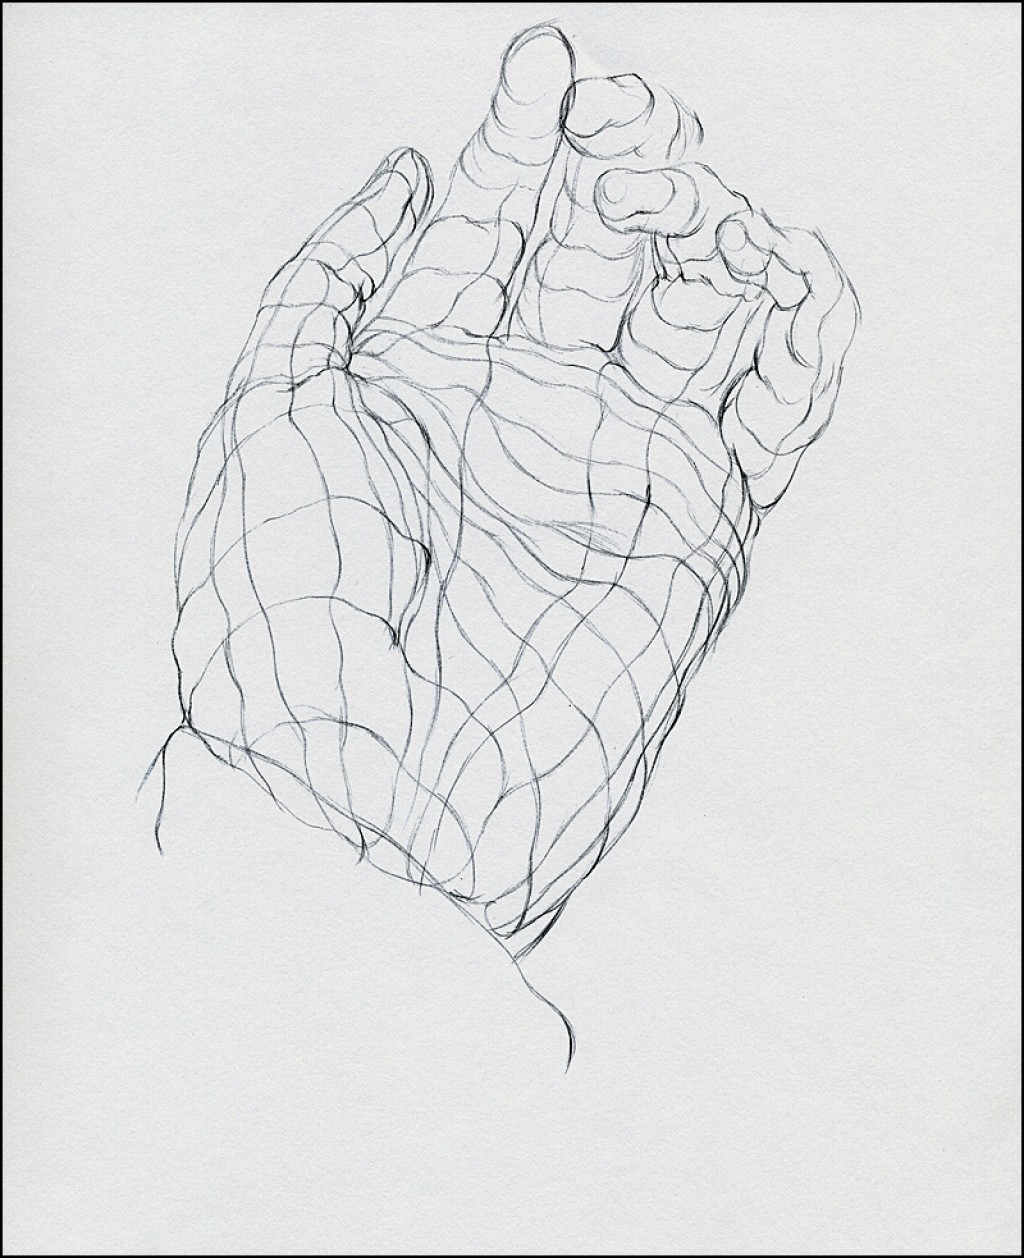 Contour Line Drawing Objects : Cross contour drawing for beginners